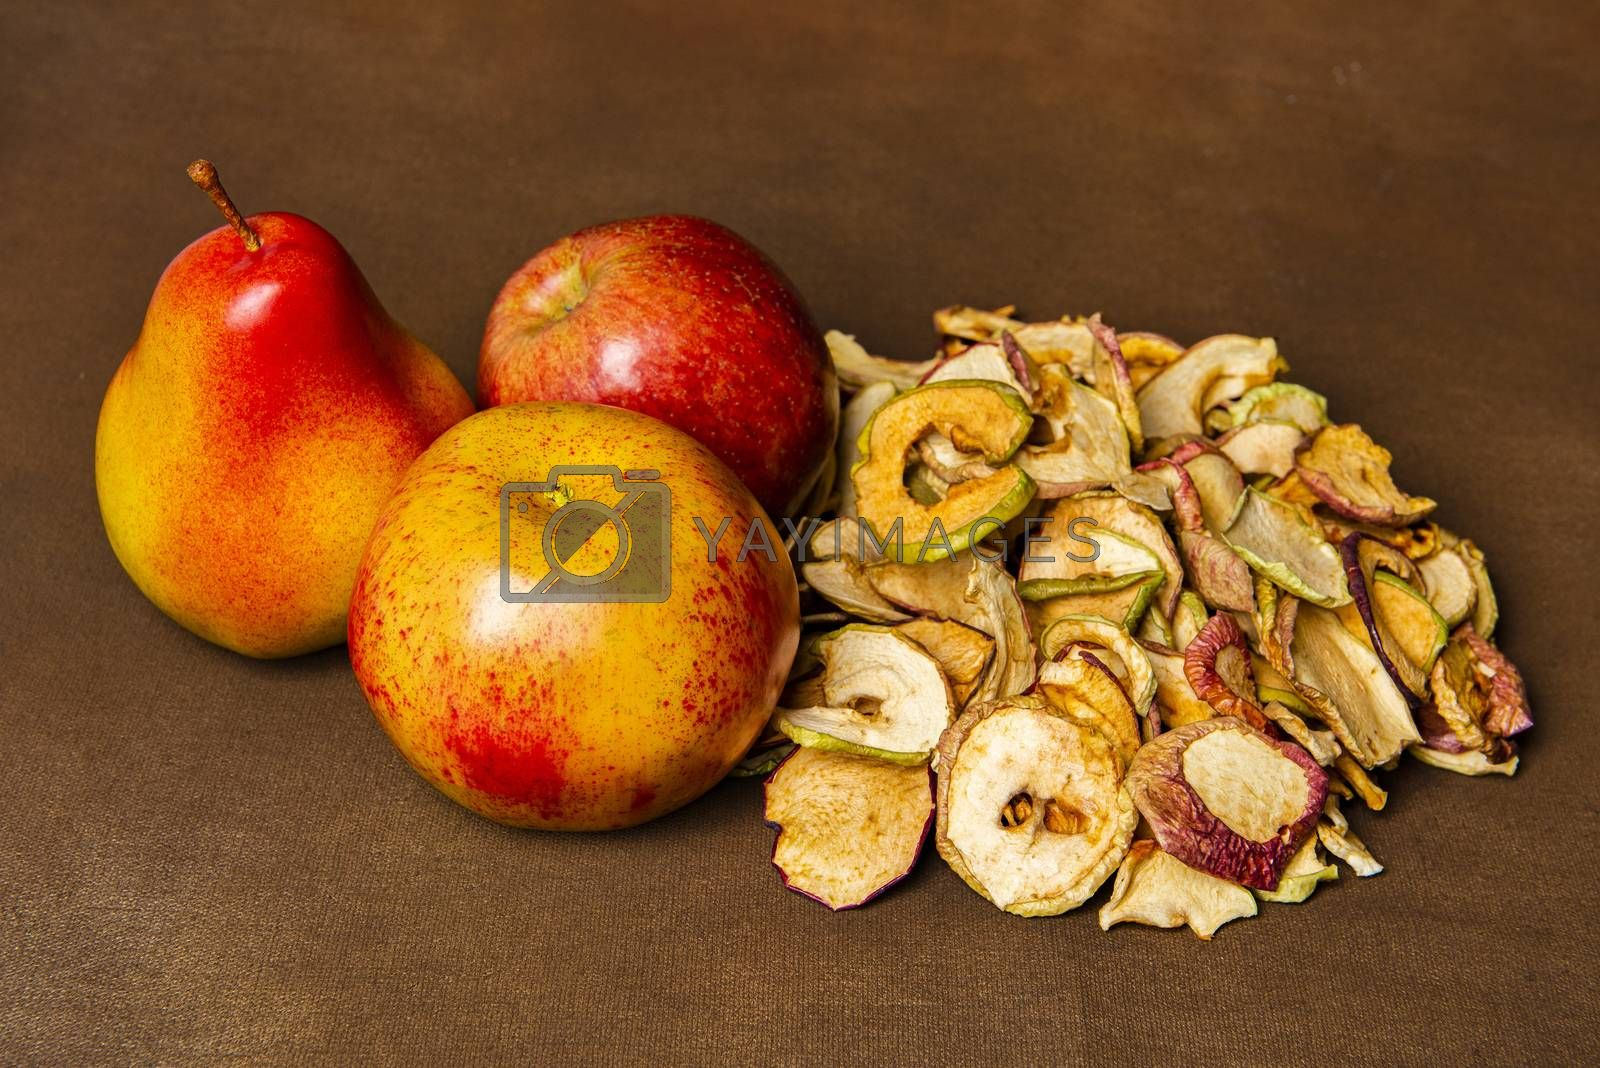 Pile of dried apples together with two whole apples and one pear. Still life concept of fall season harvest and homemade fruit processing